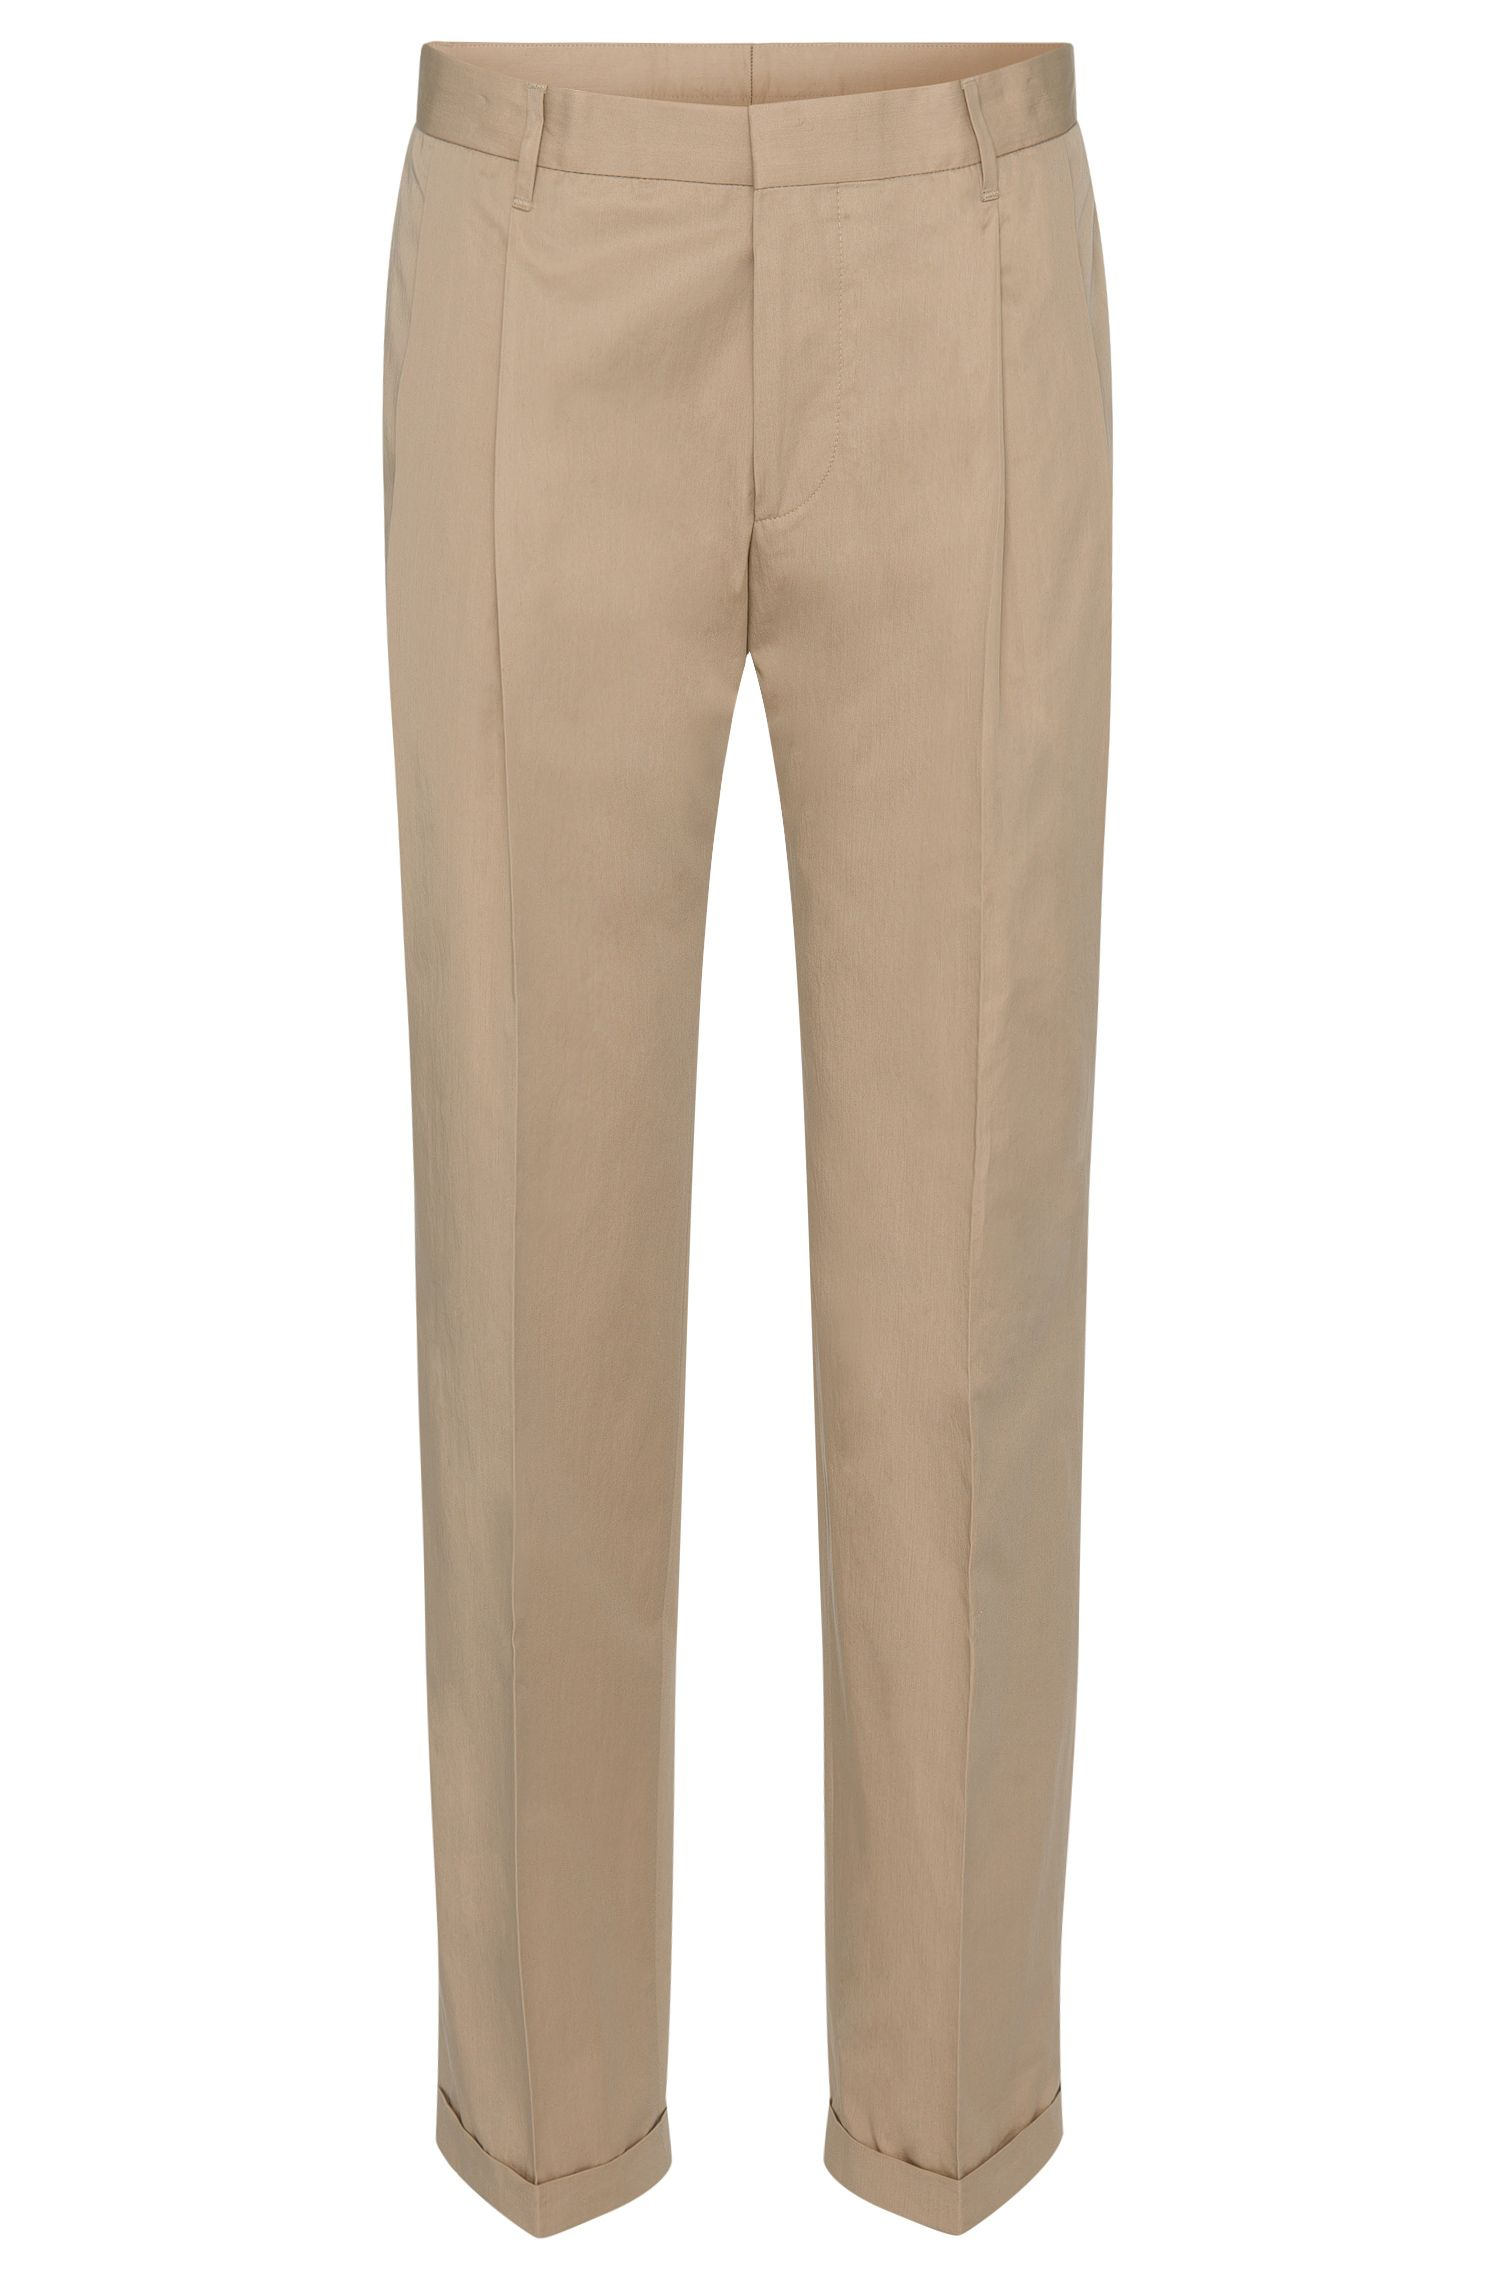 'Paton' | Slim Fit, Cotton Pleated Trousers